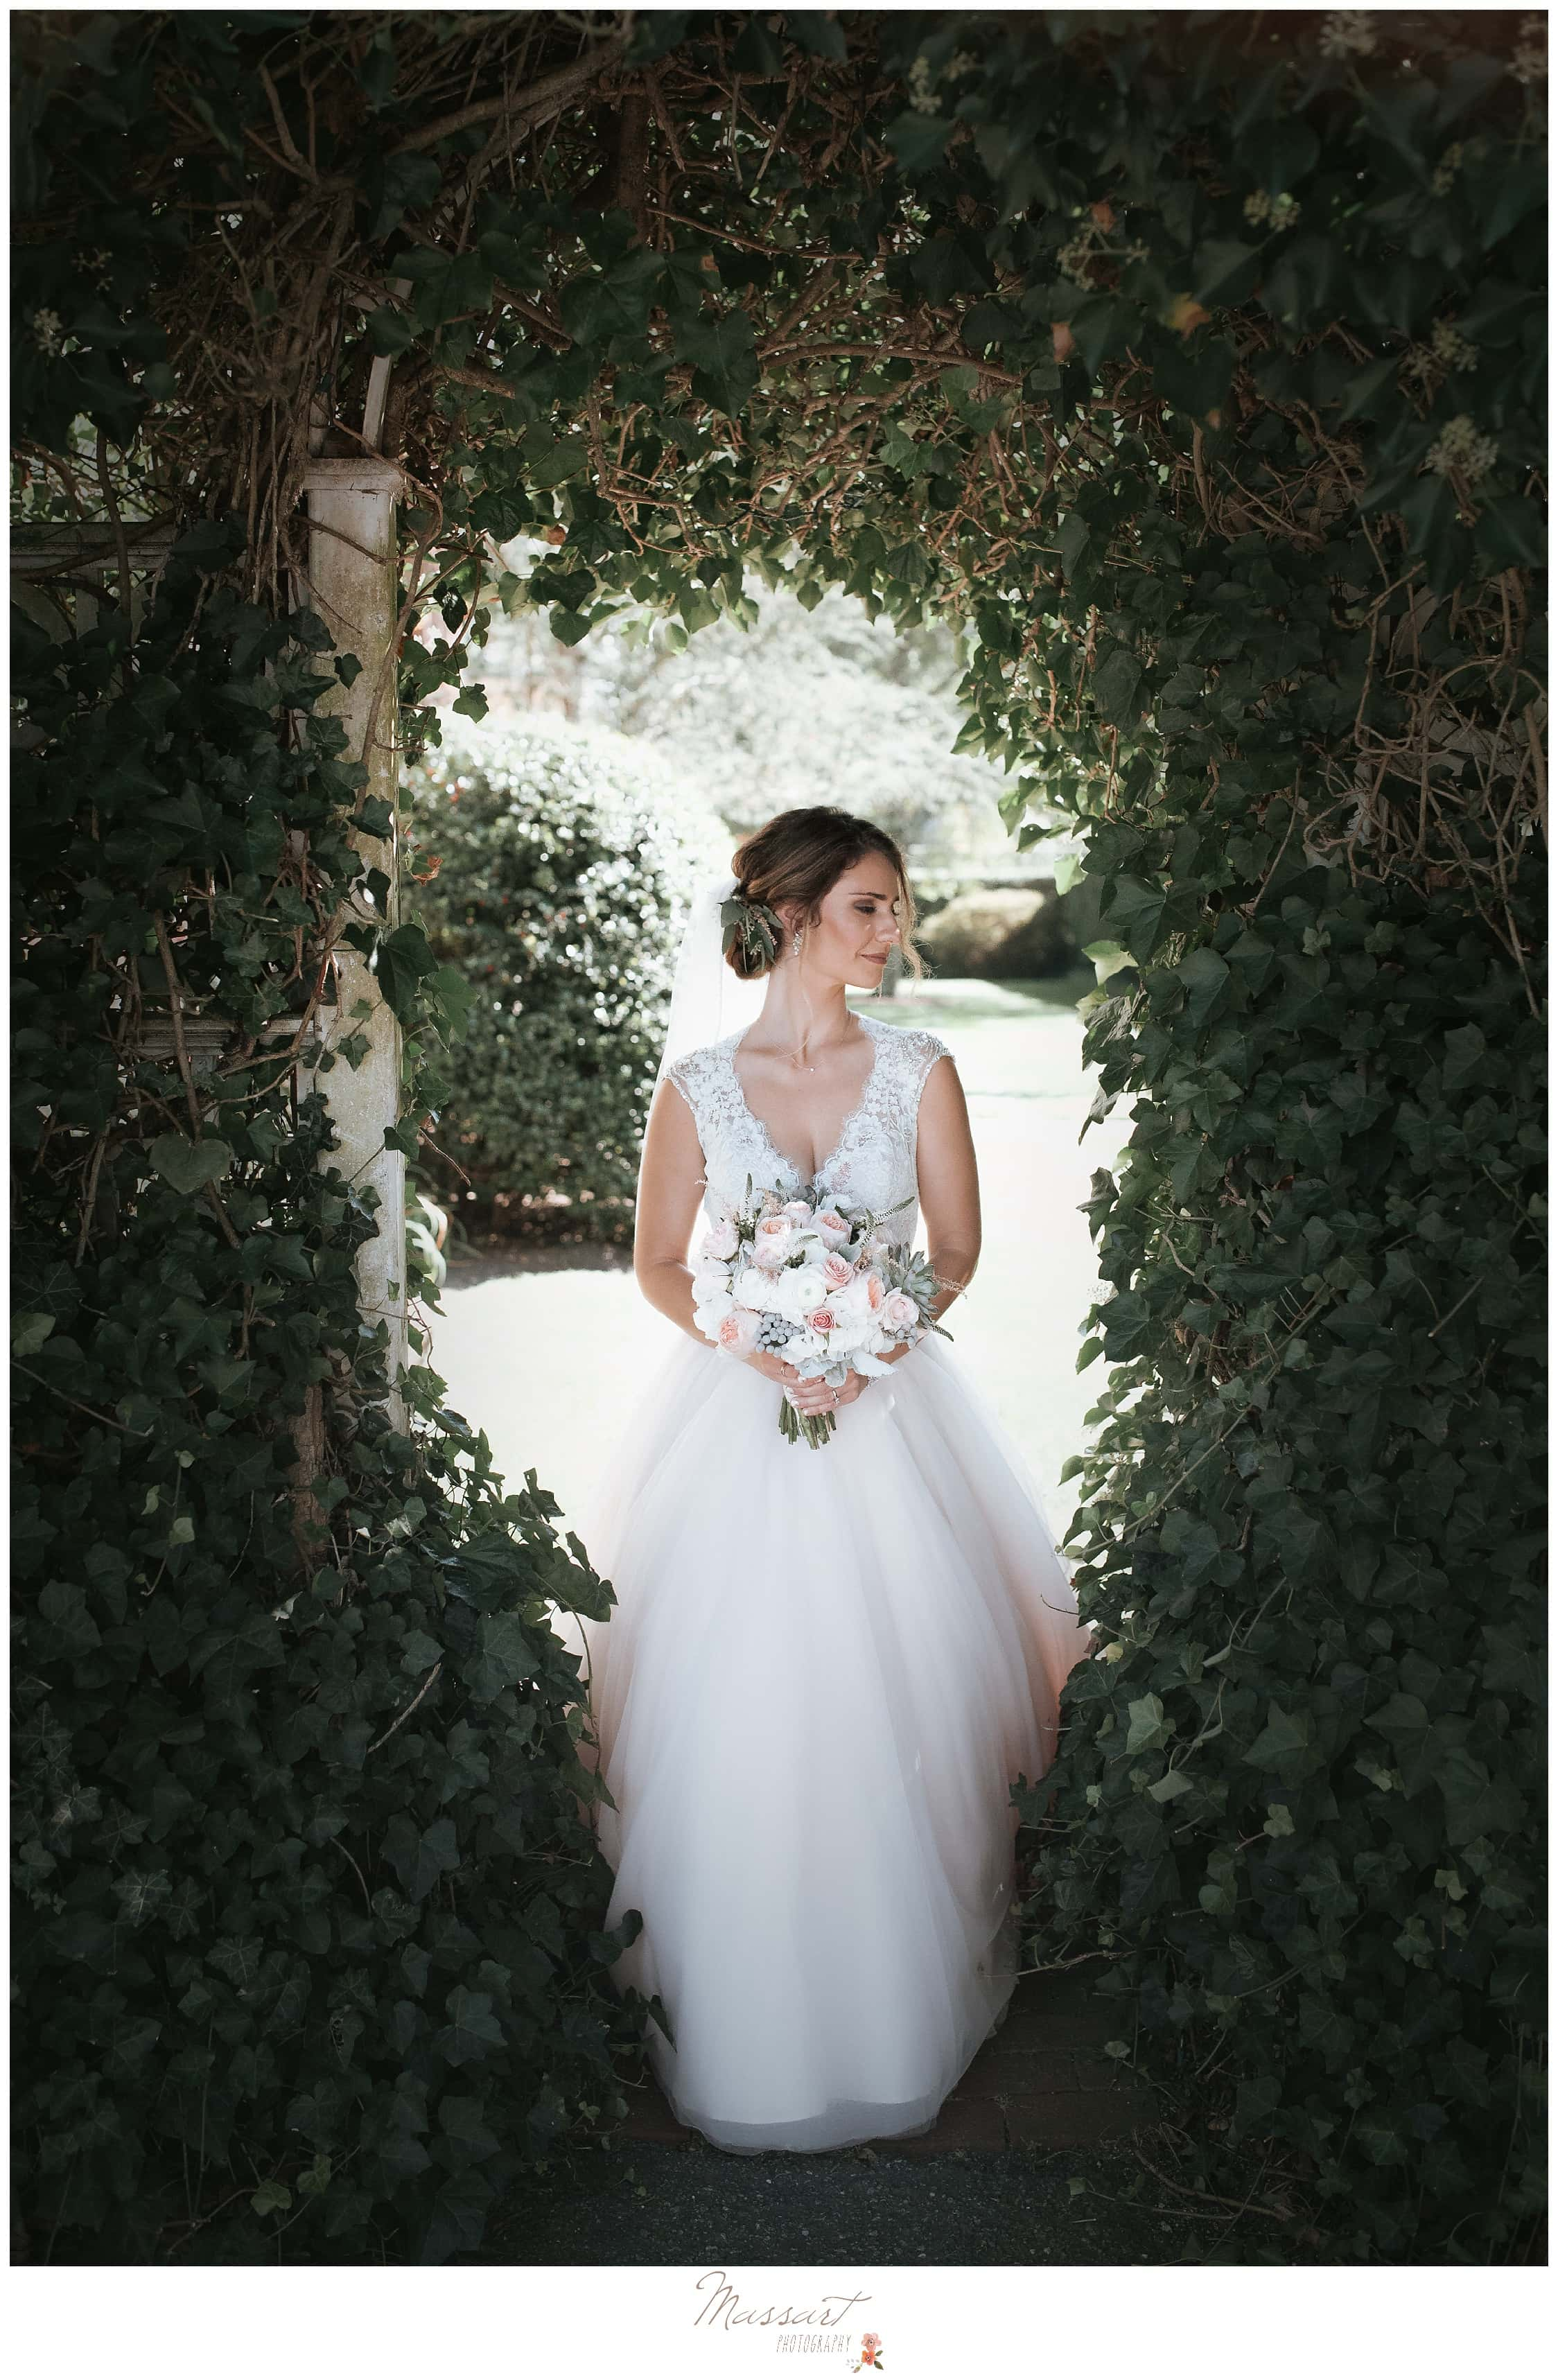 Massart Photography uses the beautiful gardens of The Ivy lodge in newport, RI for a portrait of the bride